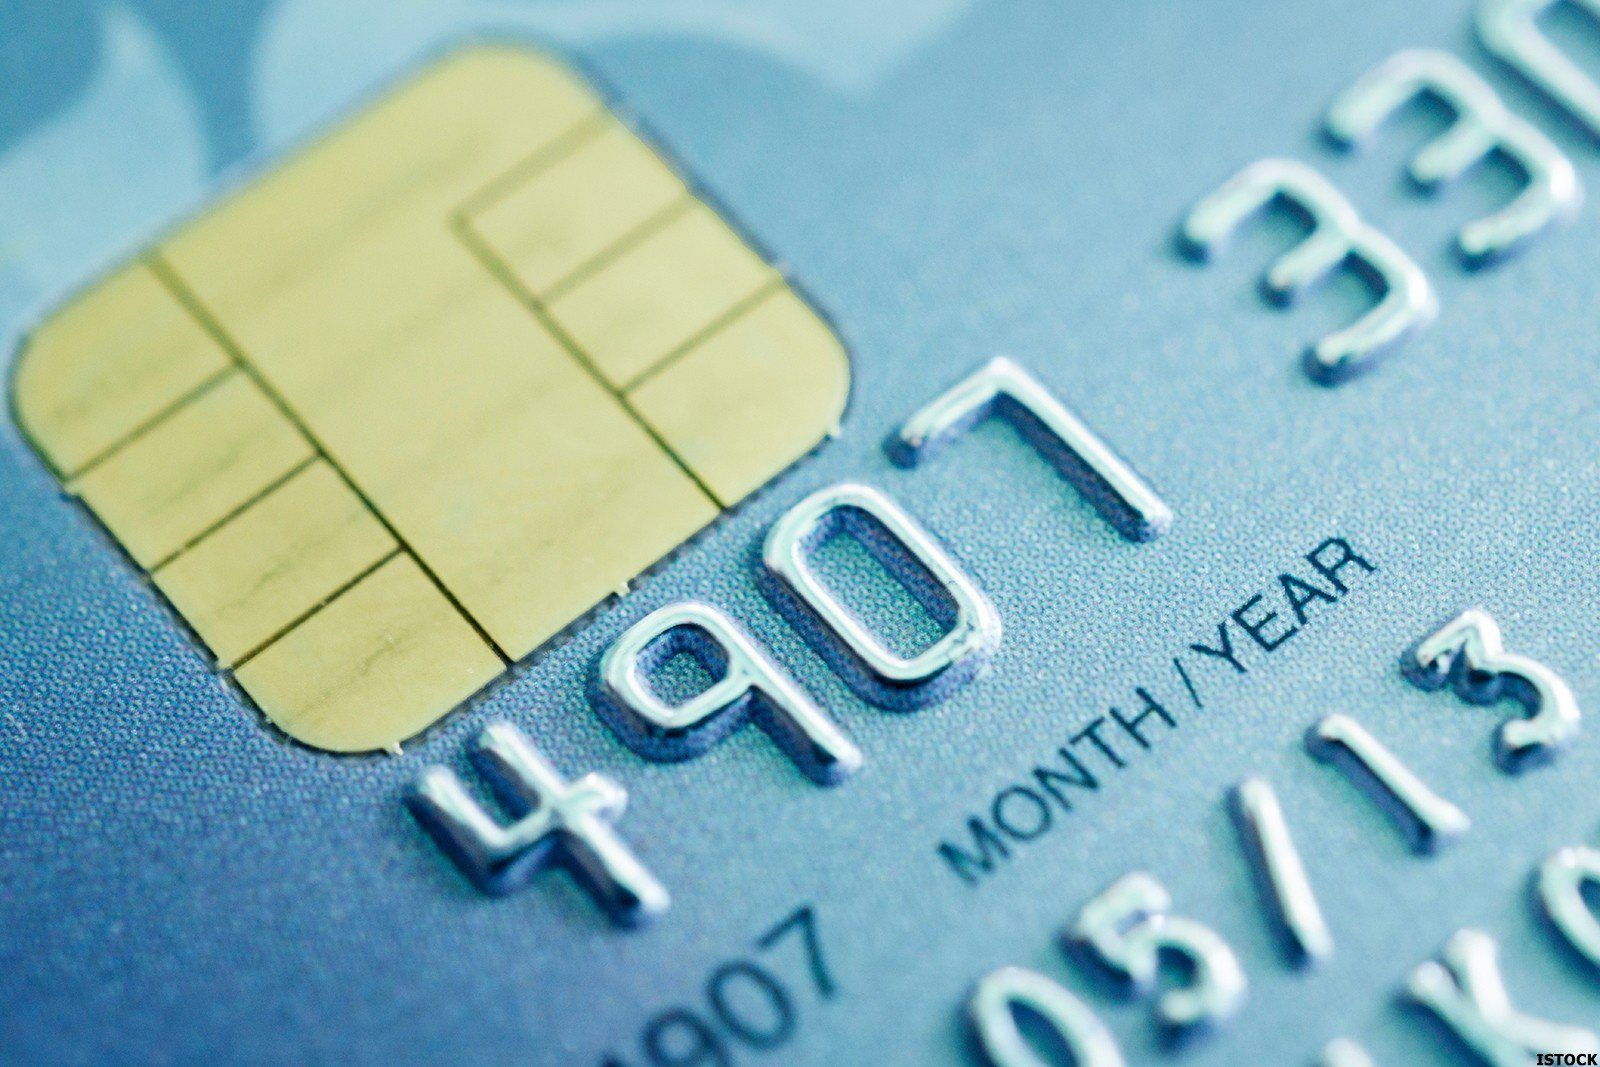 5 Steps To Avoid Being A Credit Fraud Victim